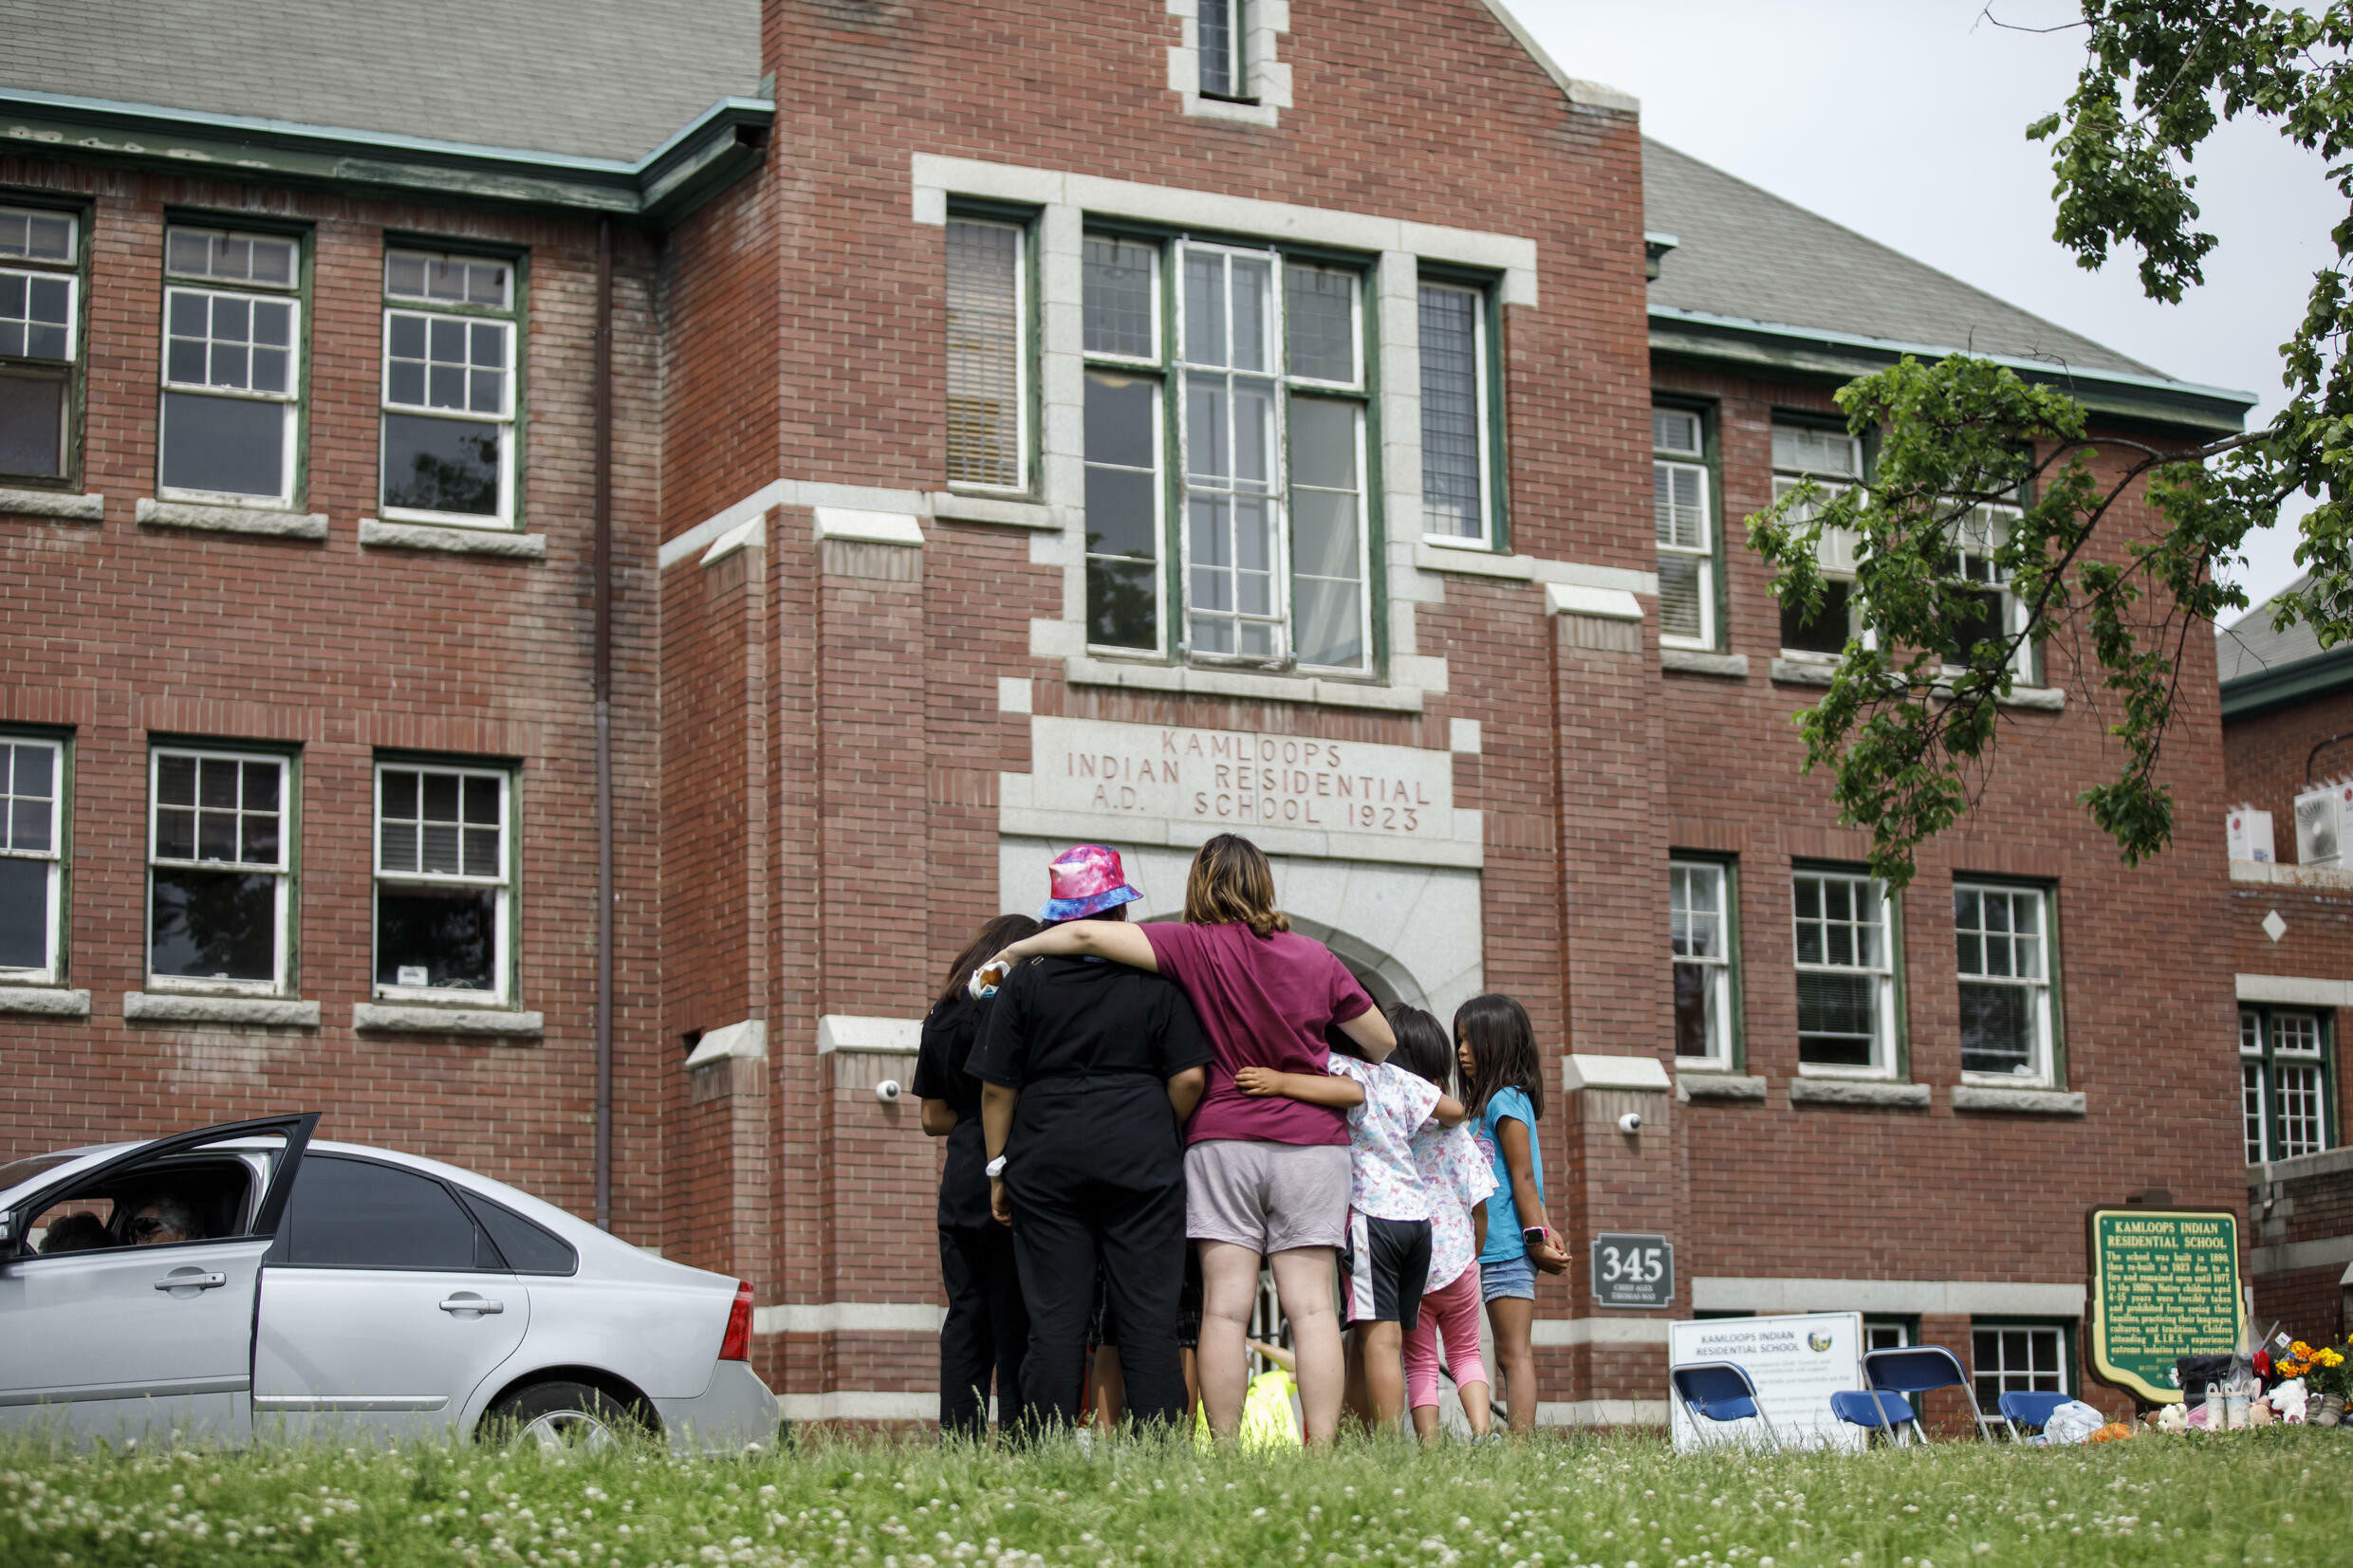 People look at the former Kamloops Indian Residential School where flowers and cards were left in June 2021 as part of a memorial to children whose remains were discovered buried near the facility